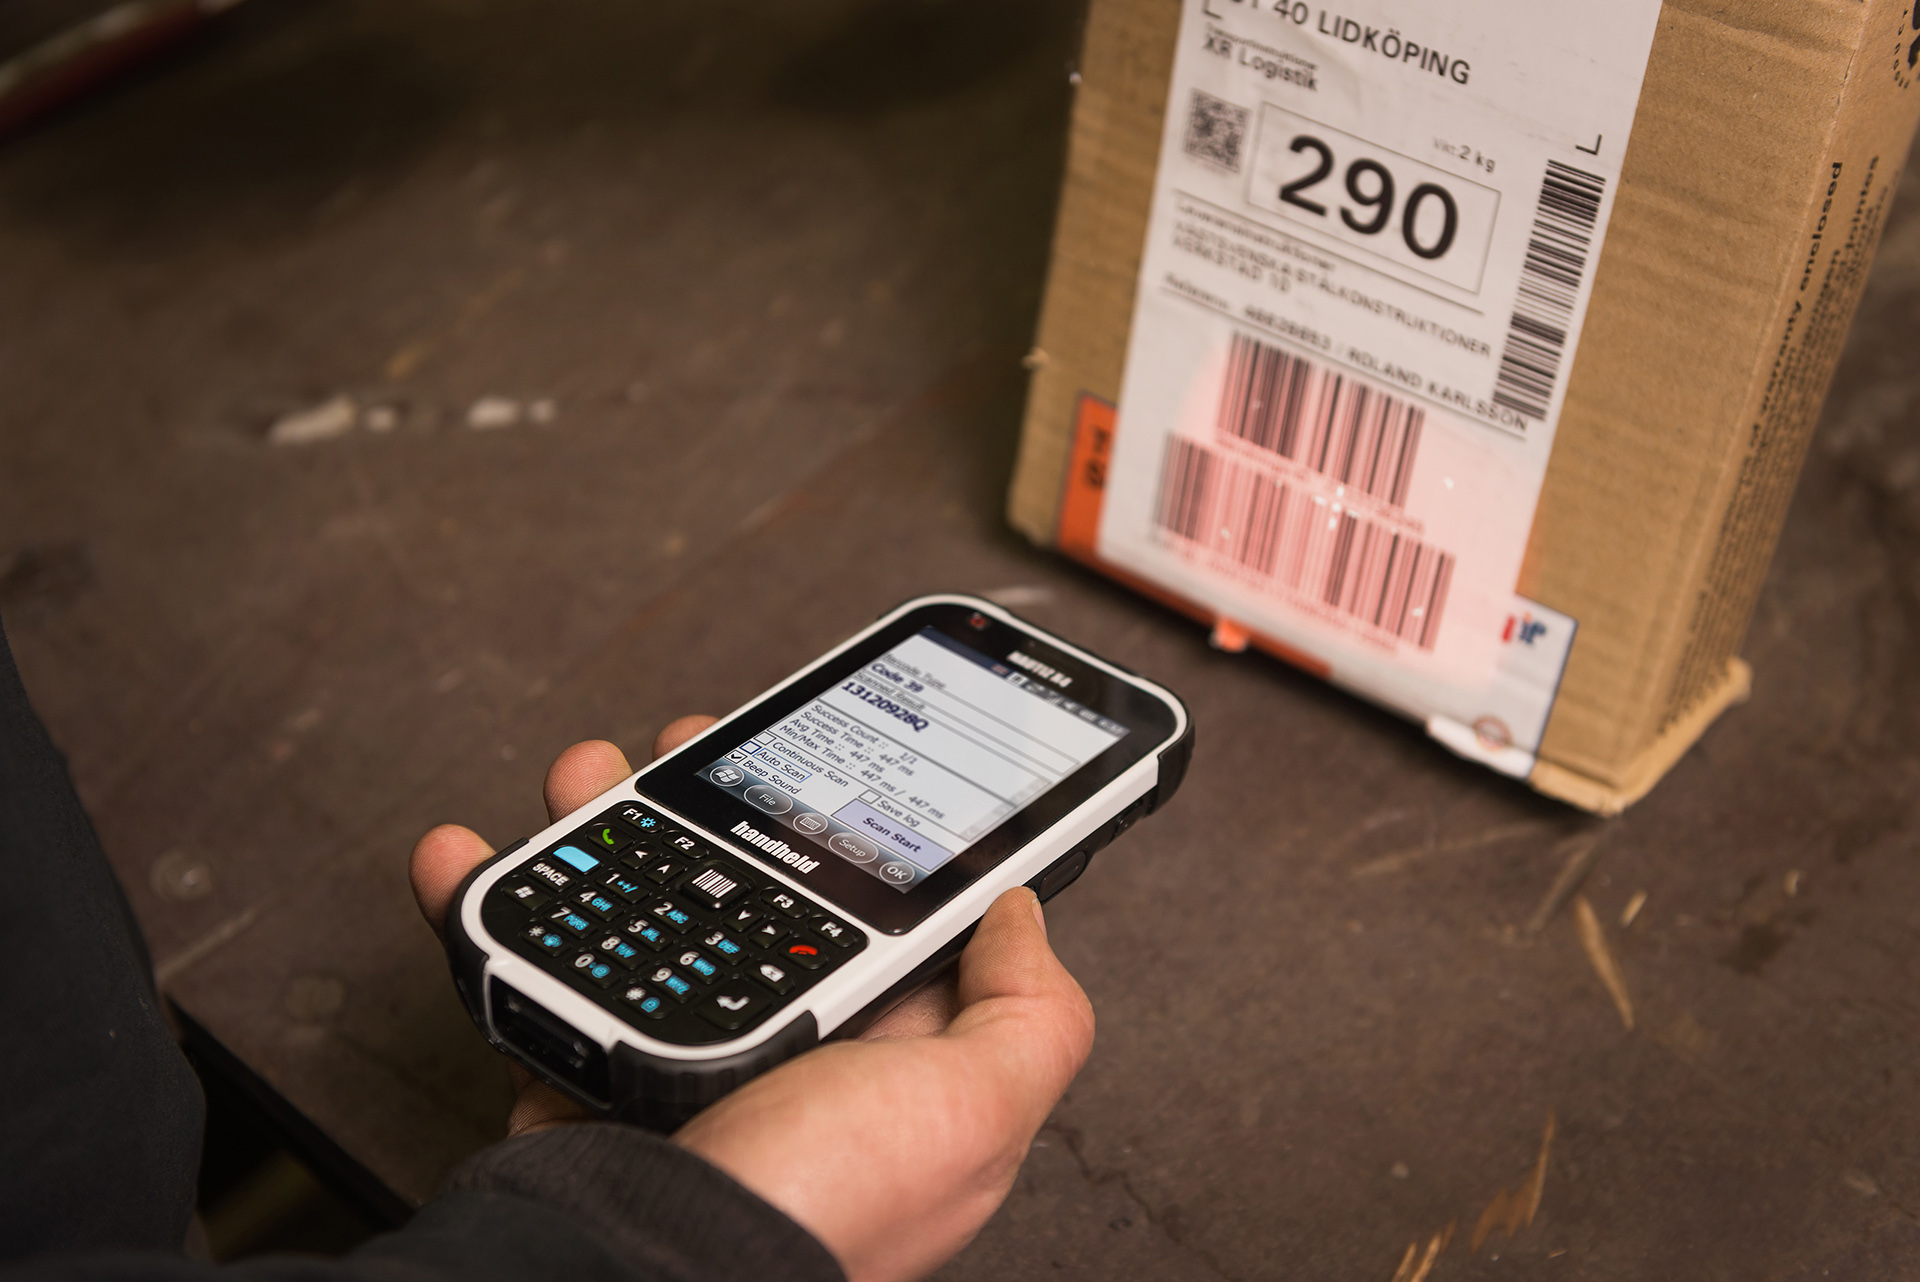 Handheld-Nautiz-X4-IP65-warehouse-scanner.jpg